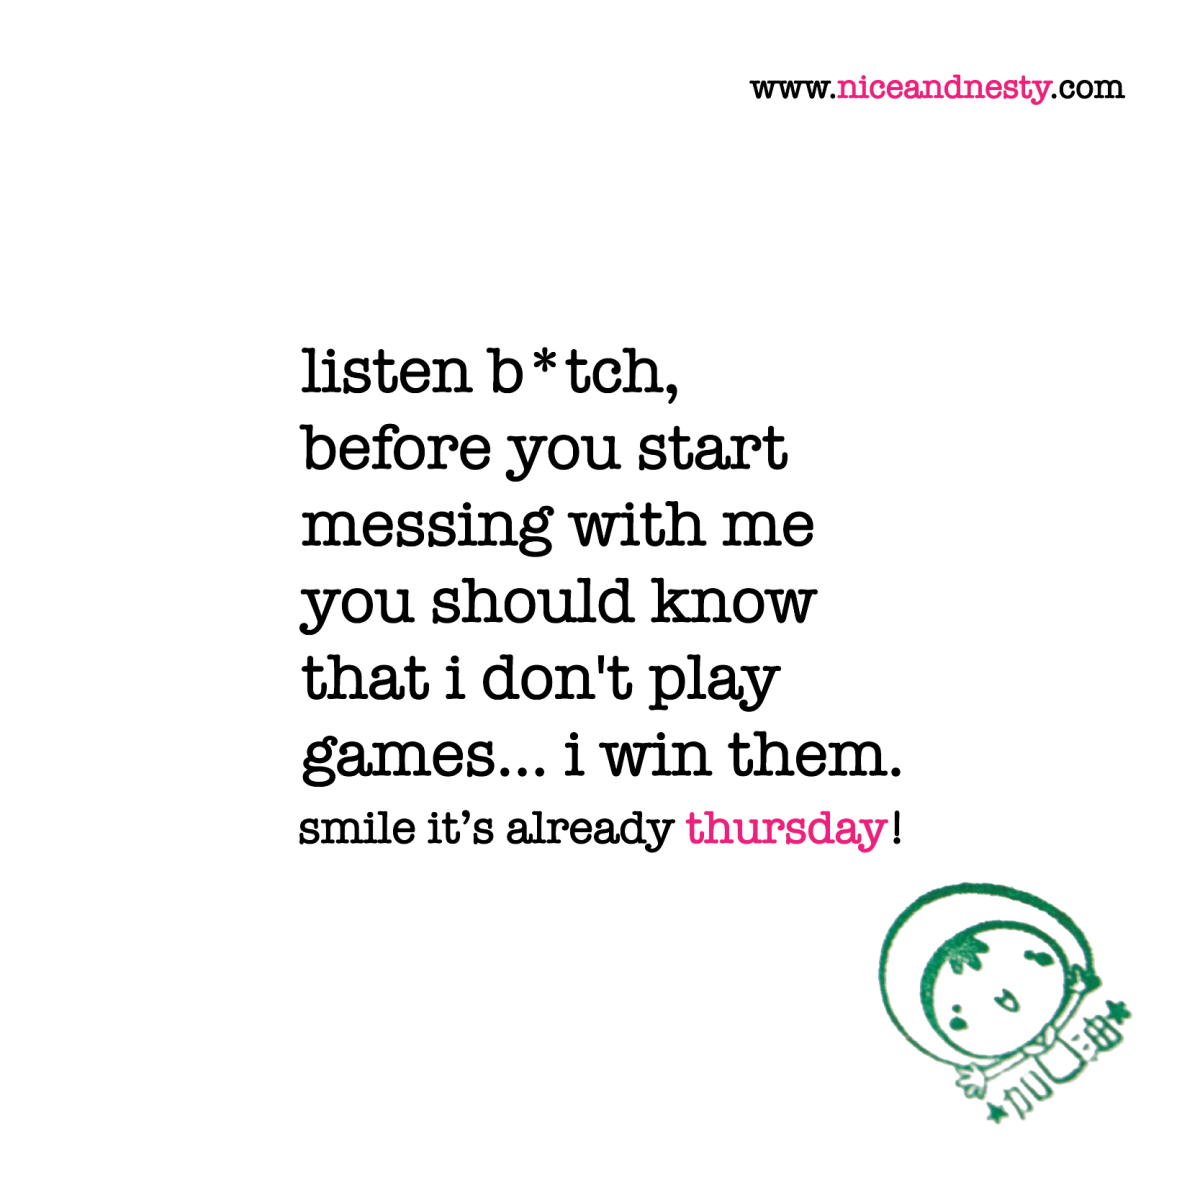 Listen B Tch Before You Start Messing With Me You Should Know That I Don T Play Games I Win Th Funny Inspirational Quotes Funny Quotes Inspirational Quotes